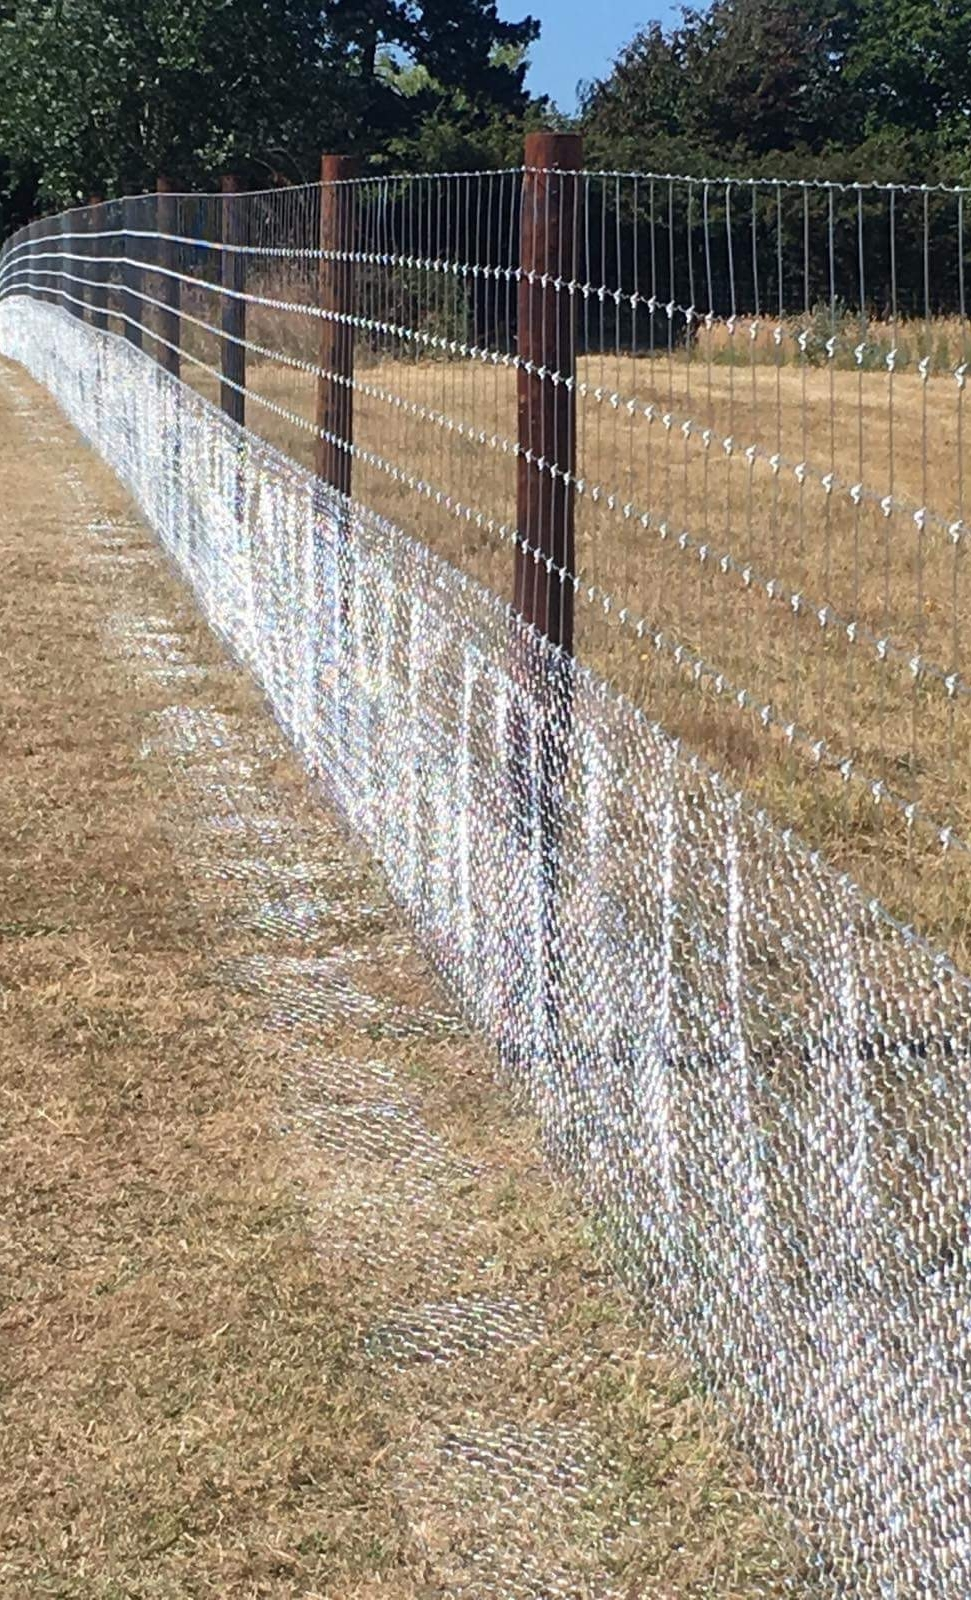 The rabbit netting is turned out to add further protection against burrowing rabbits